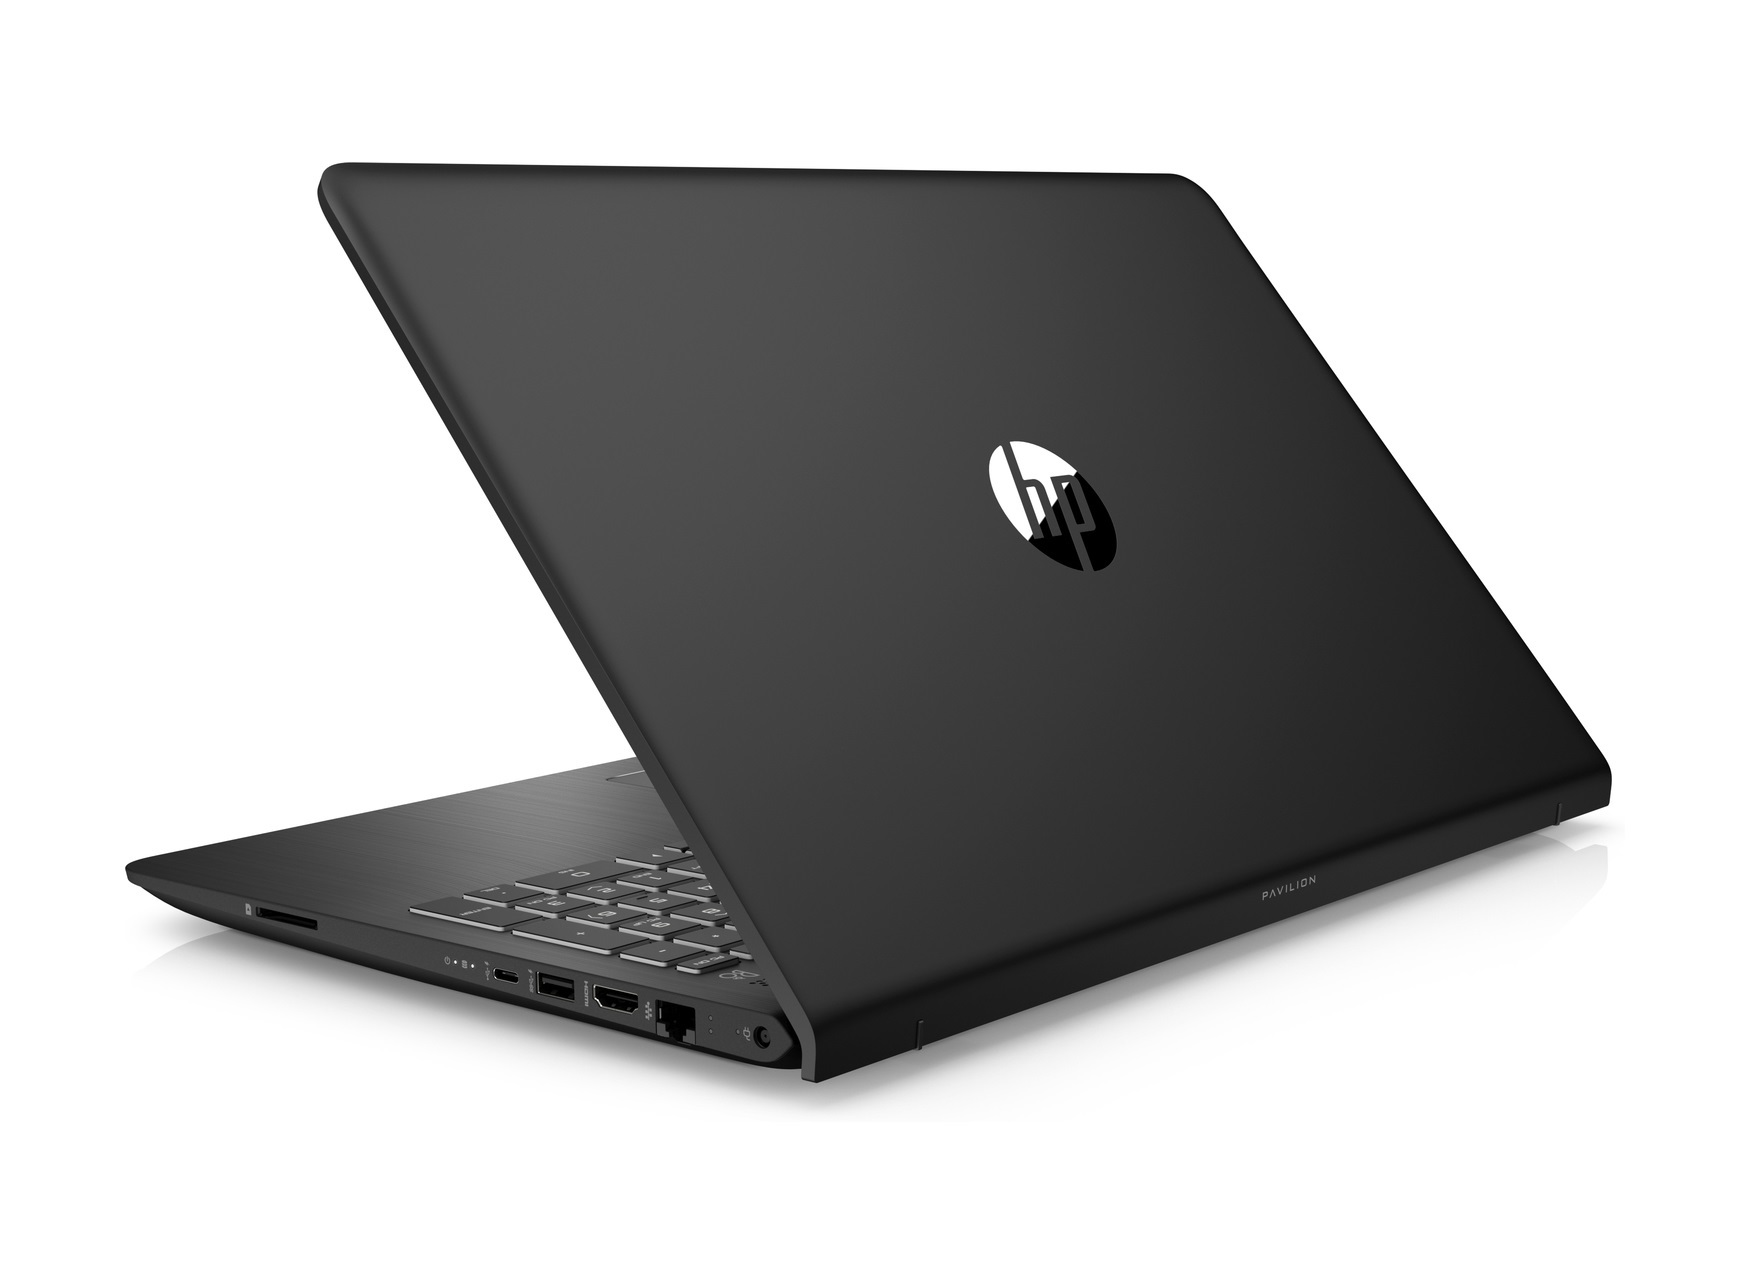 HP Pavilion power 15 back